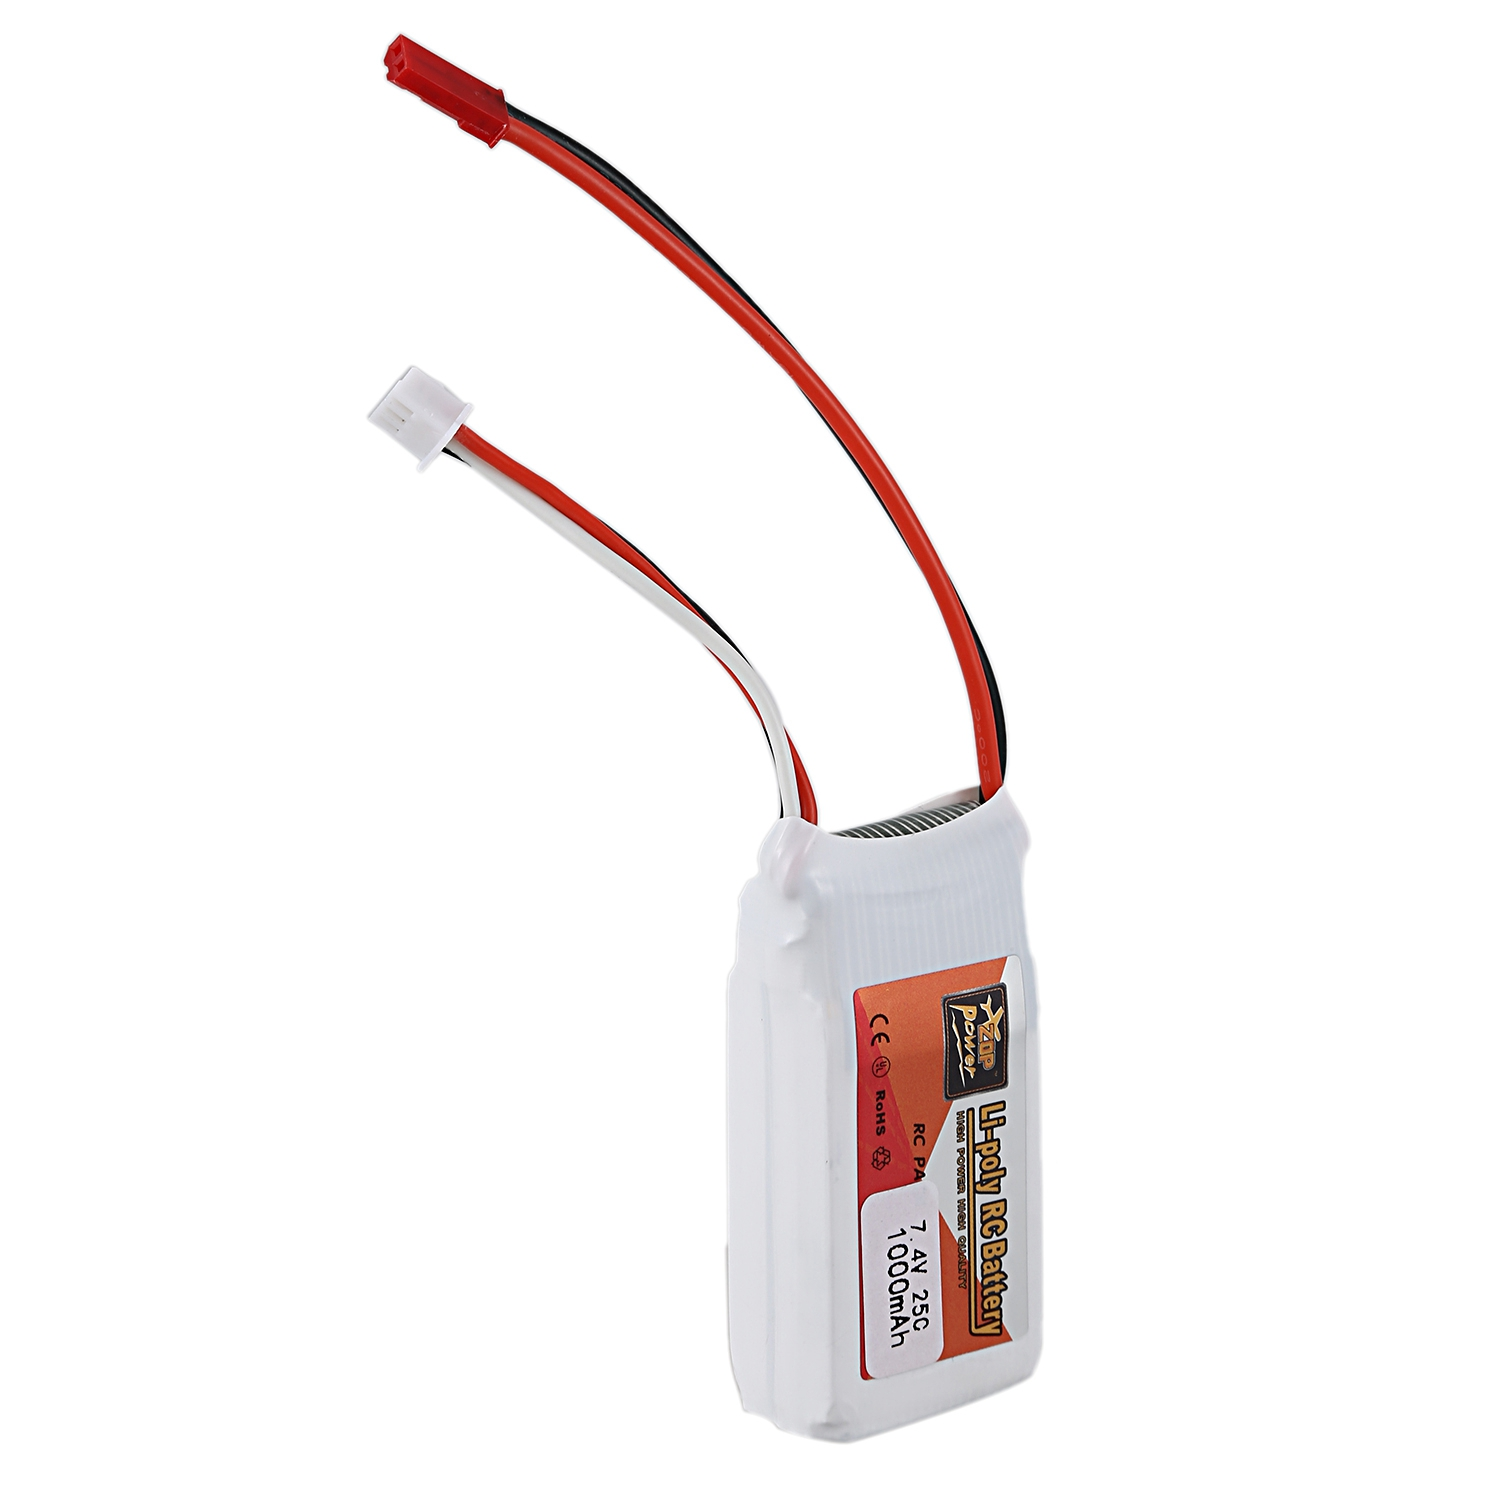 ZOP POWER Rechargeable 7.4V <font><b>1000Mah</b></font> <font><b>2S</b></font> 25C <font><b>Lipo</b></font> Battery Jst Plug Connector For Rc Drone Fpv Quadcopter Diy Toys Spare Parts image